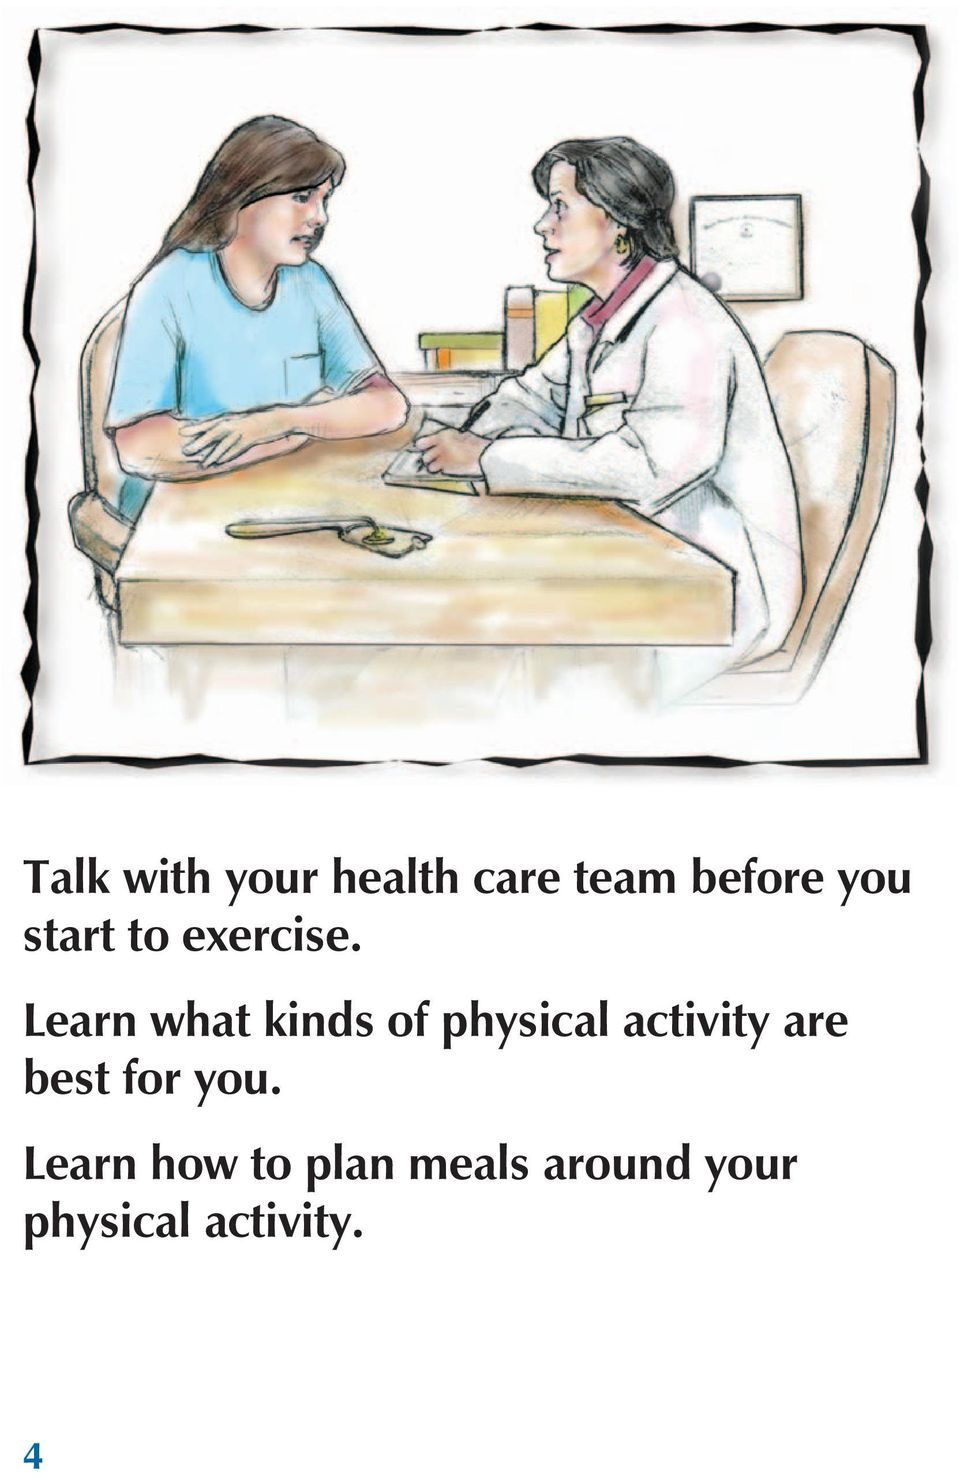 Learn what kinds of physical activity are